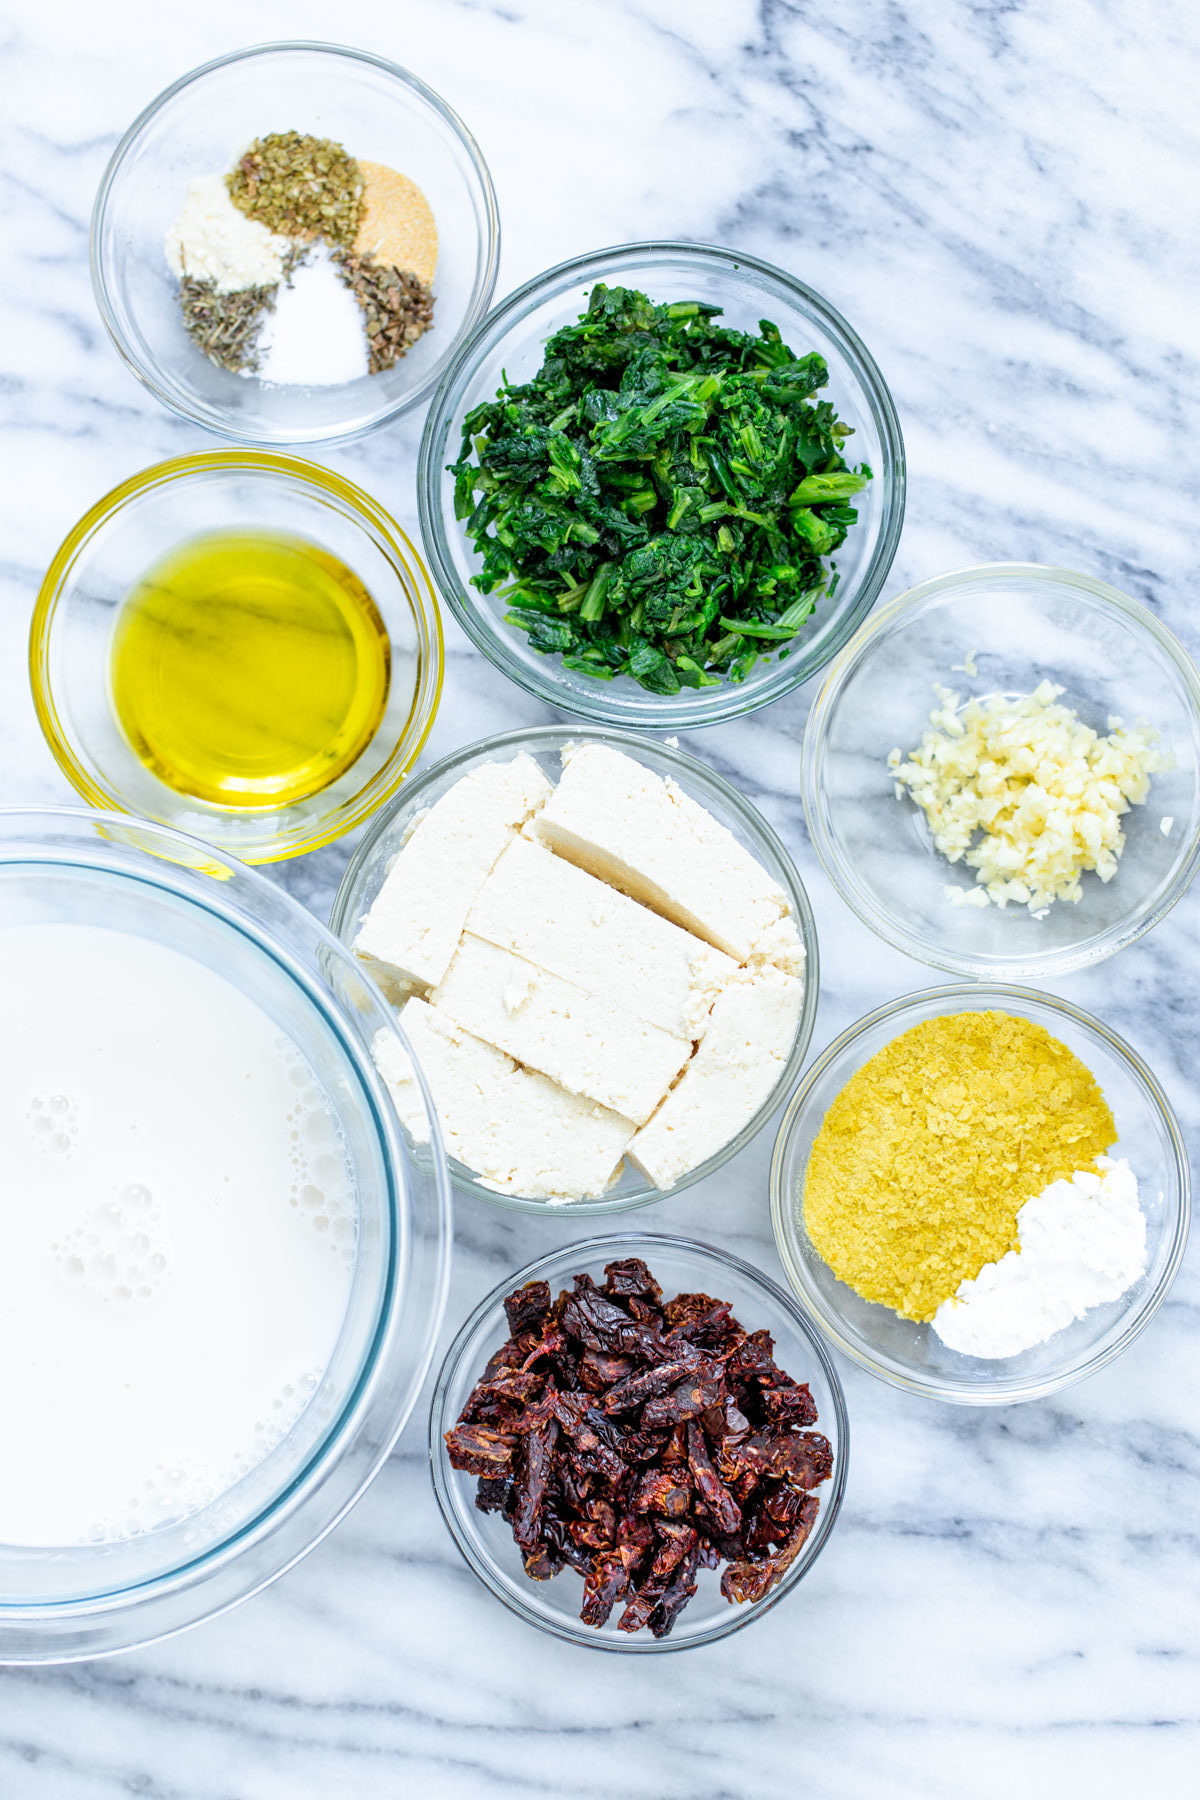 ingredients needed for making vegan creamy Italian spaghetti squash bake